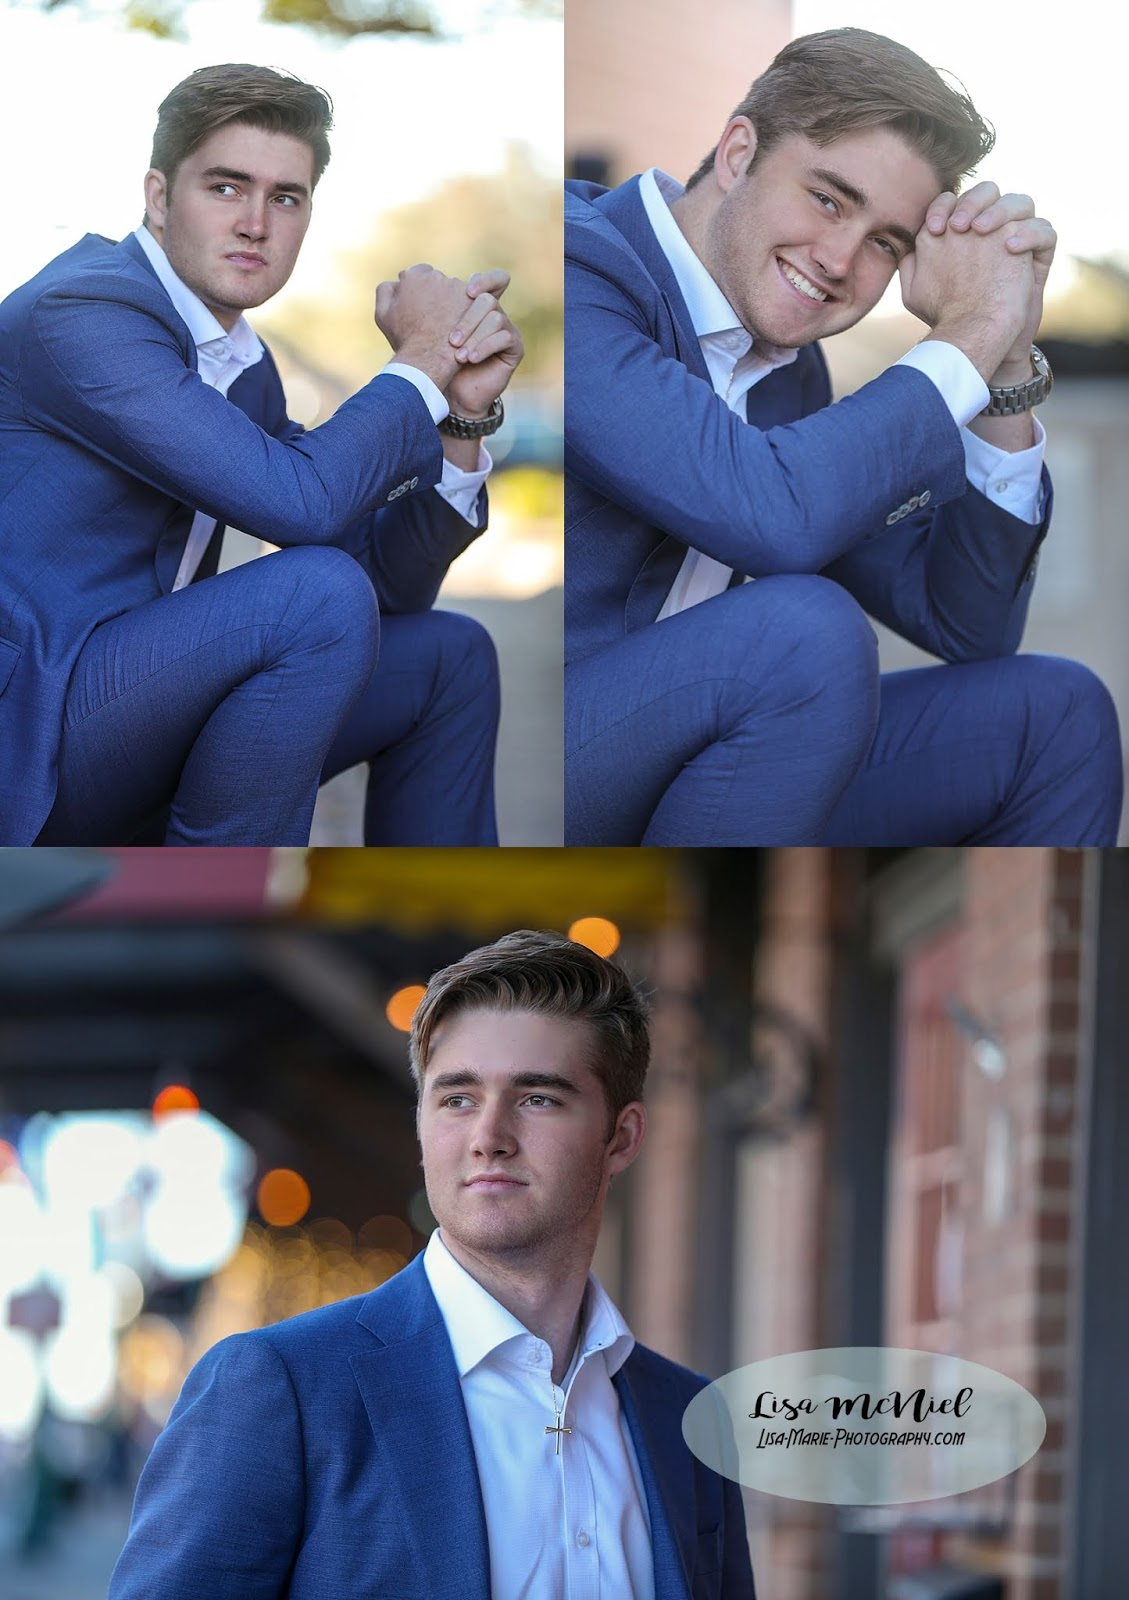 handsome young man in suit in city urban setting